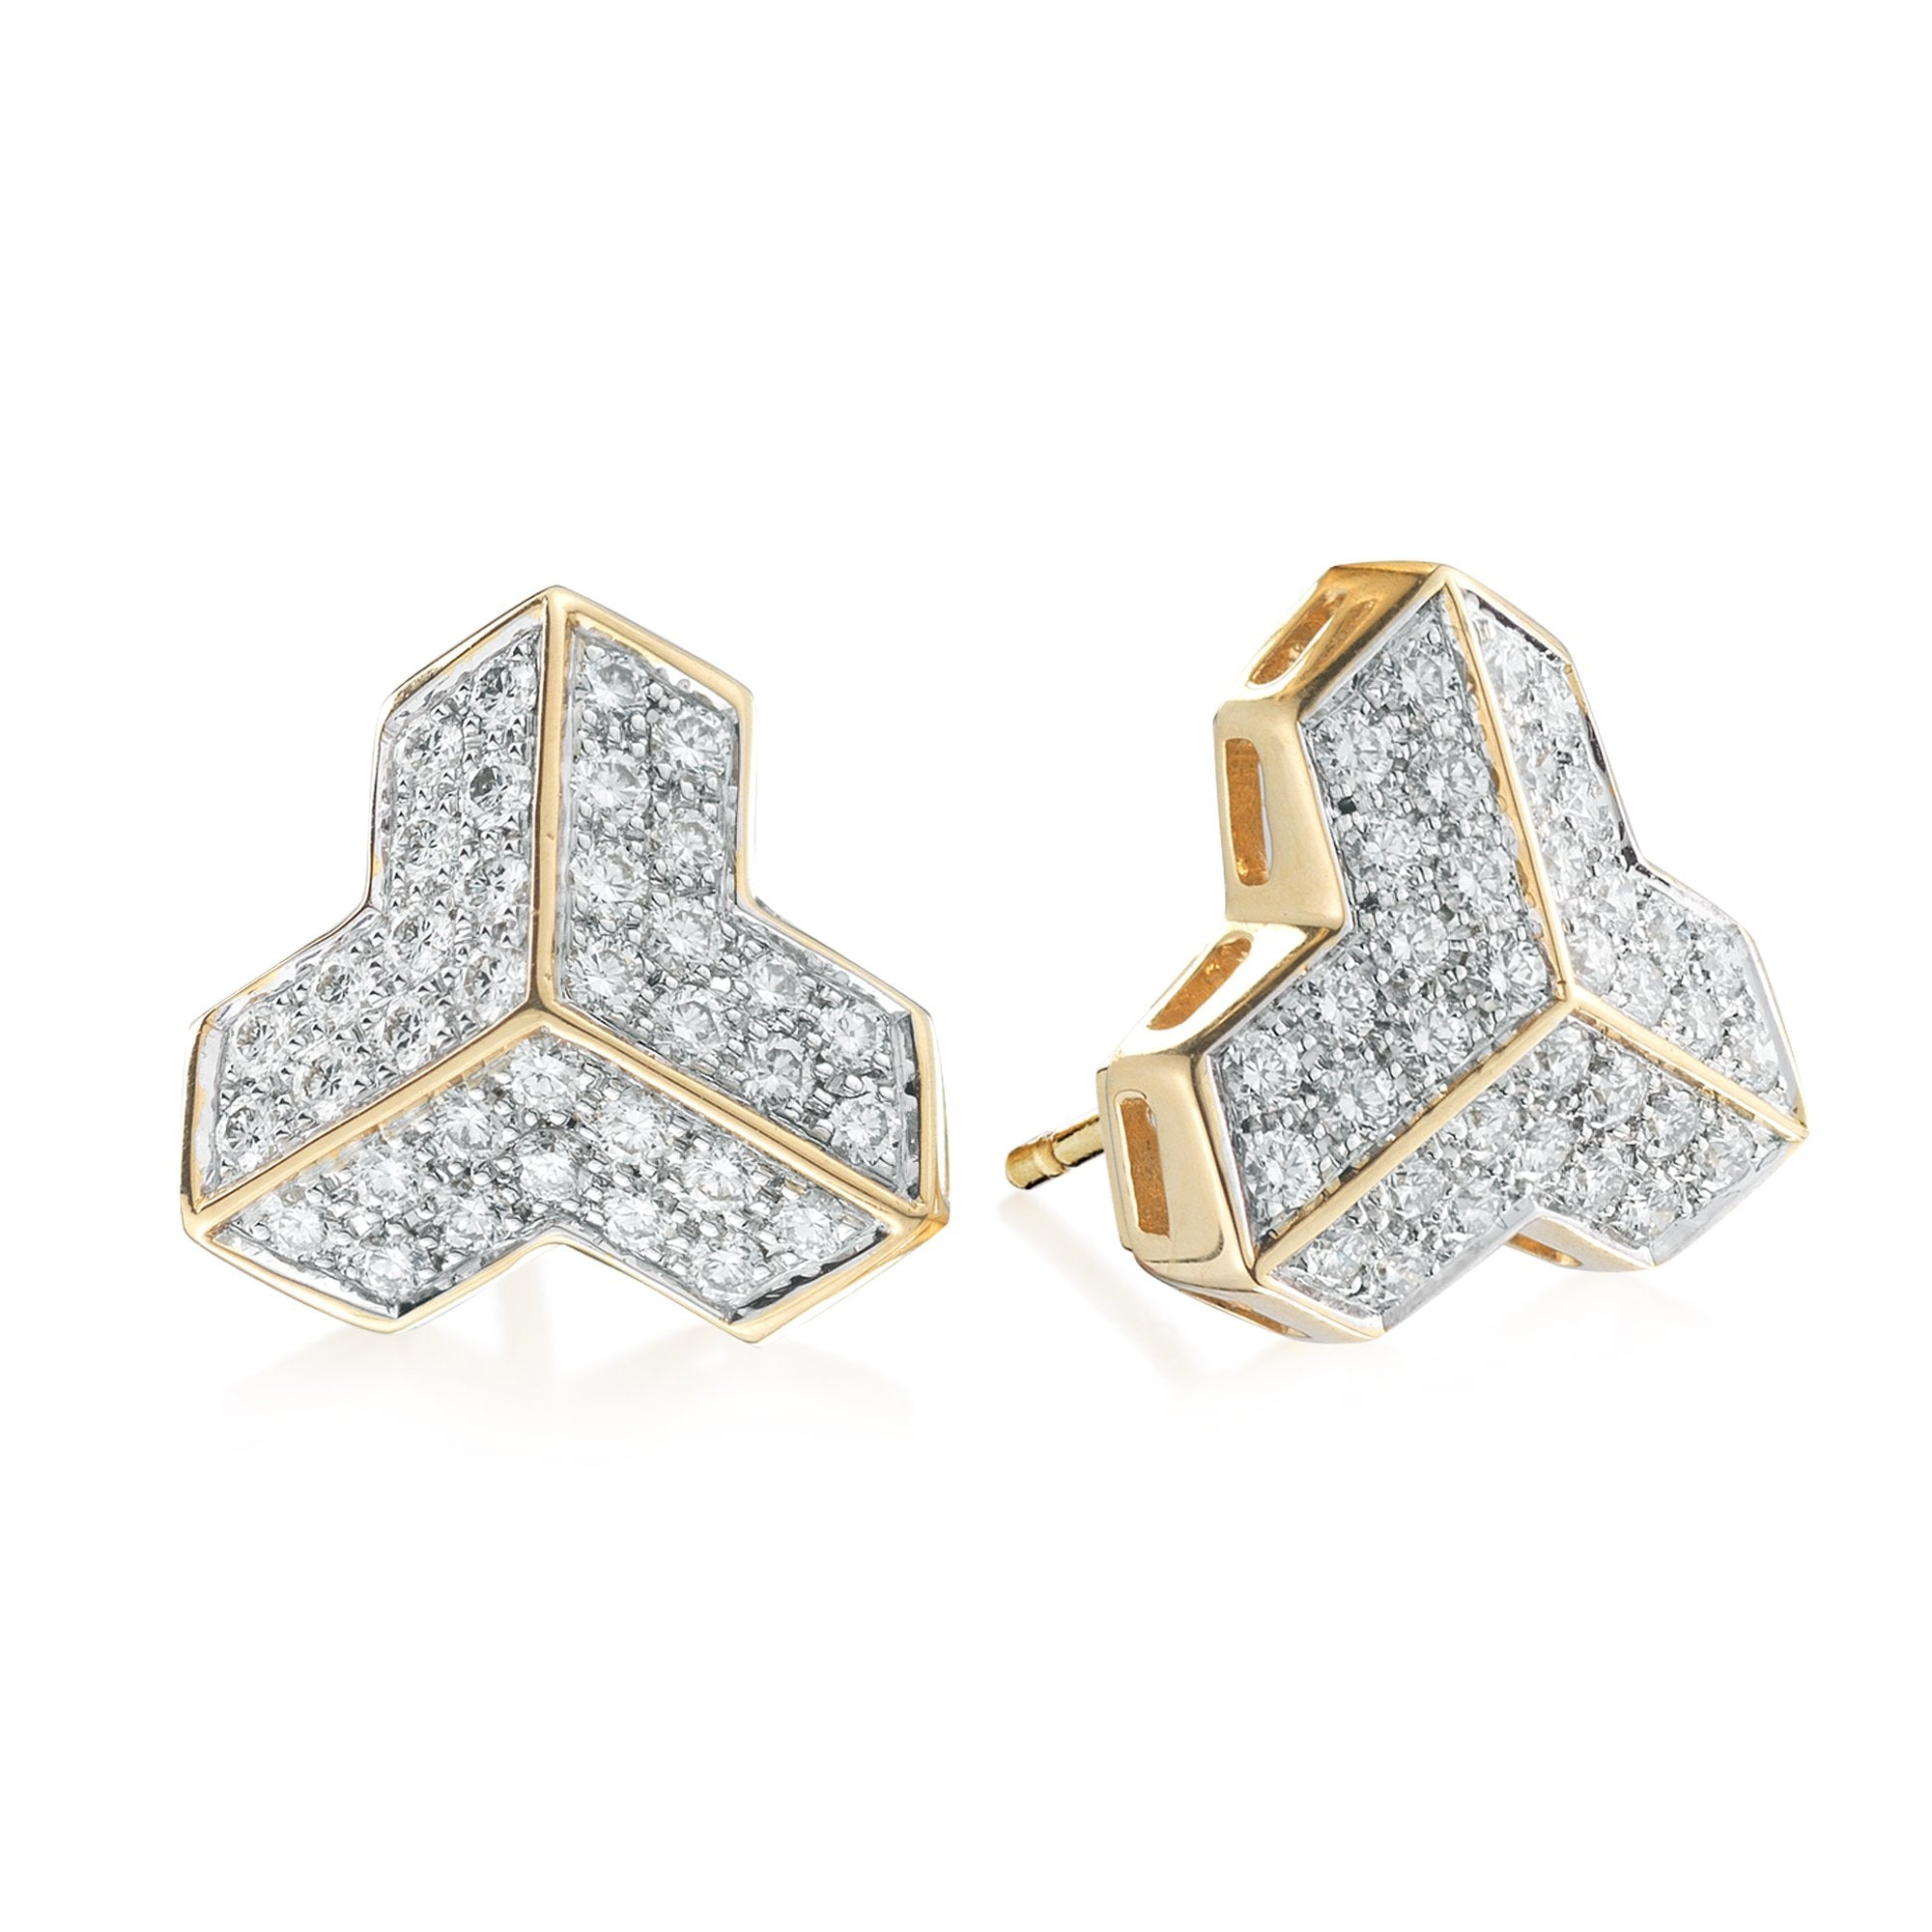 Yellow Gold and Diamond 'Brillantissimo' Stud Earrings, Petite - Paolo Costagli - 1